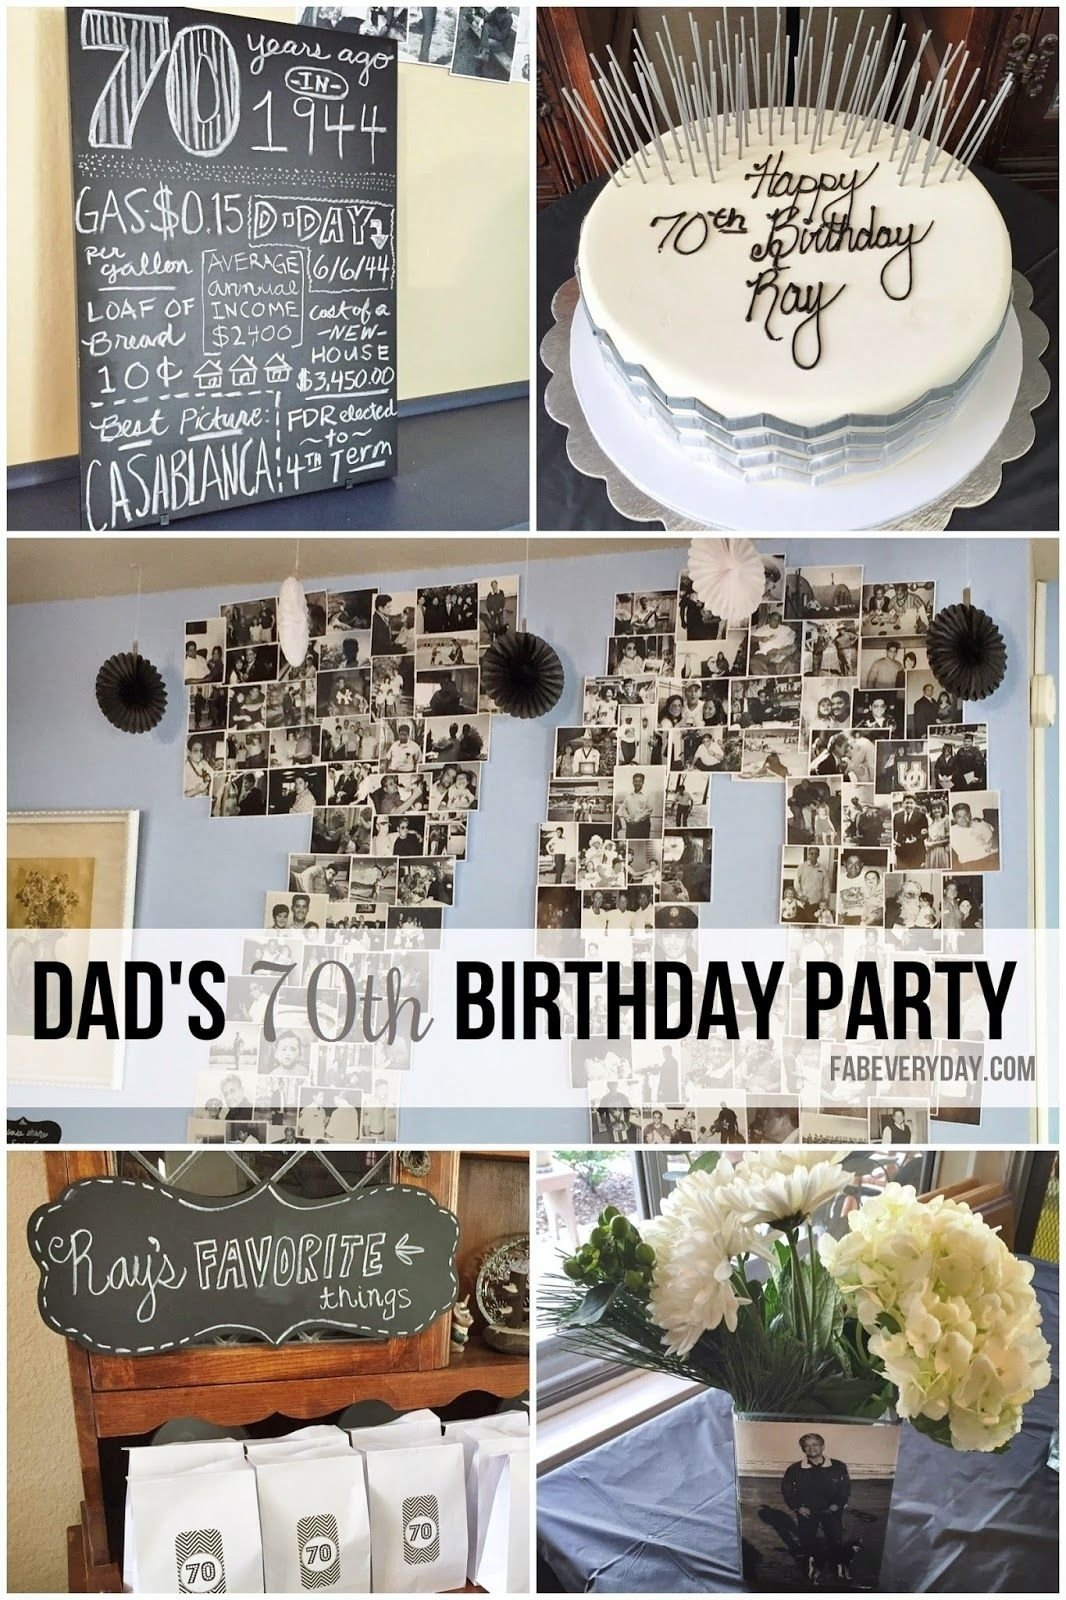 10 Nice Ideas For A 70Th Birthday Party milestone birthday planning my dads 70th birthday party 70 8 2021